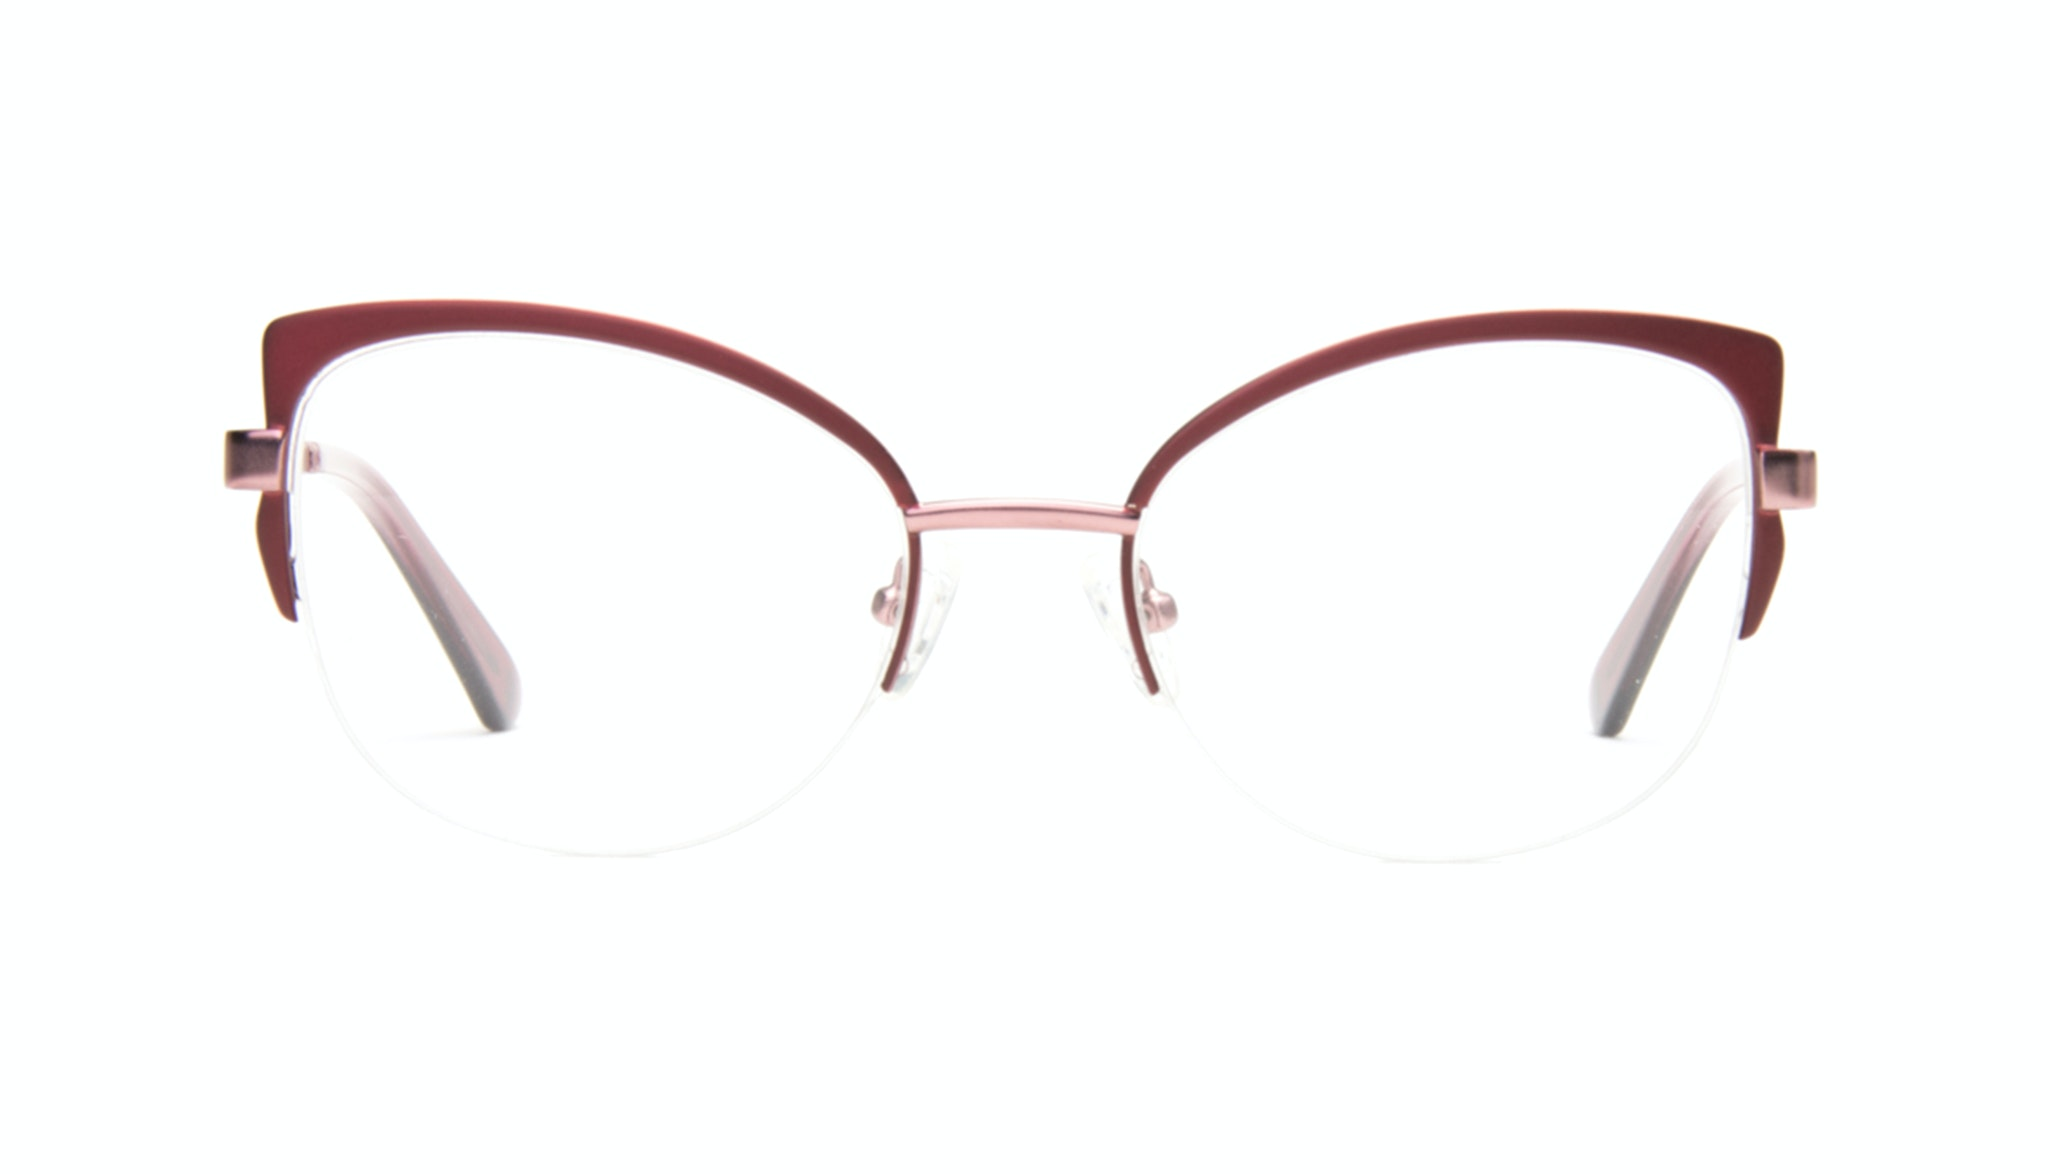 Affordable Fashion Glasses Cat Eye Semi-Rimless Eyeglasses Women Adore Cranberry Front